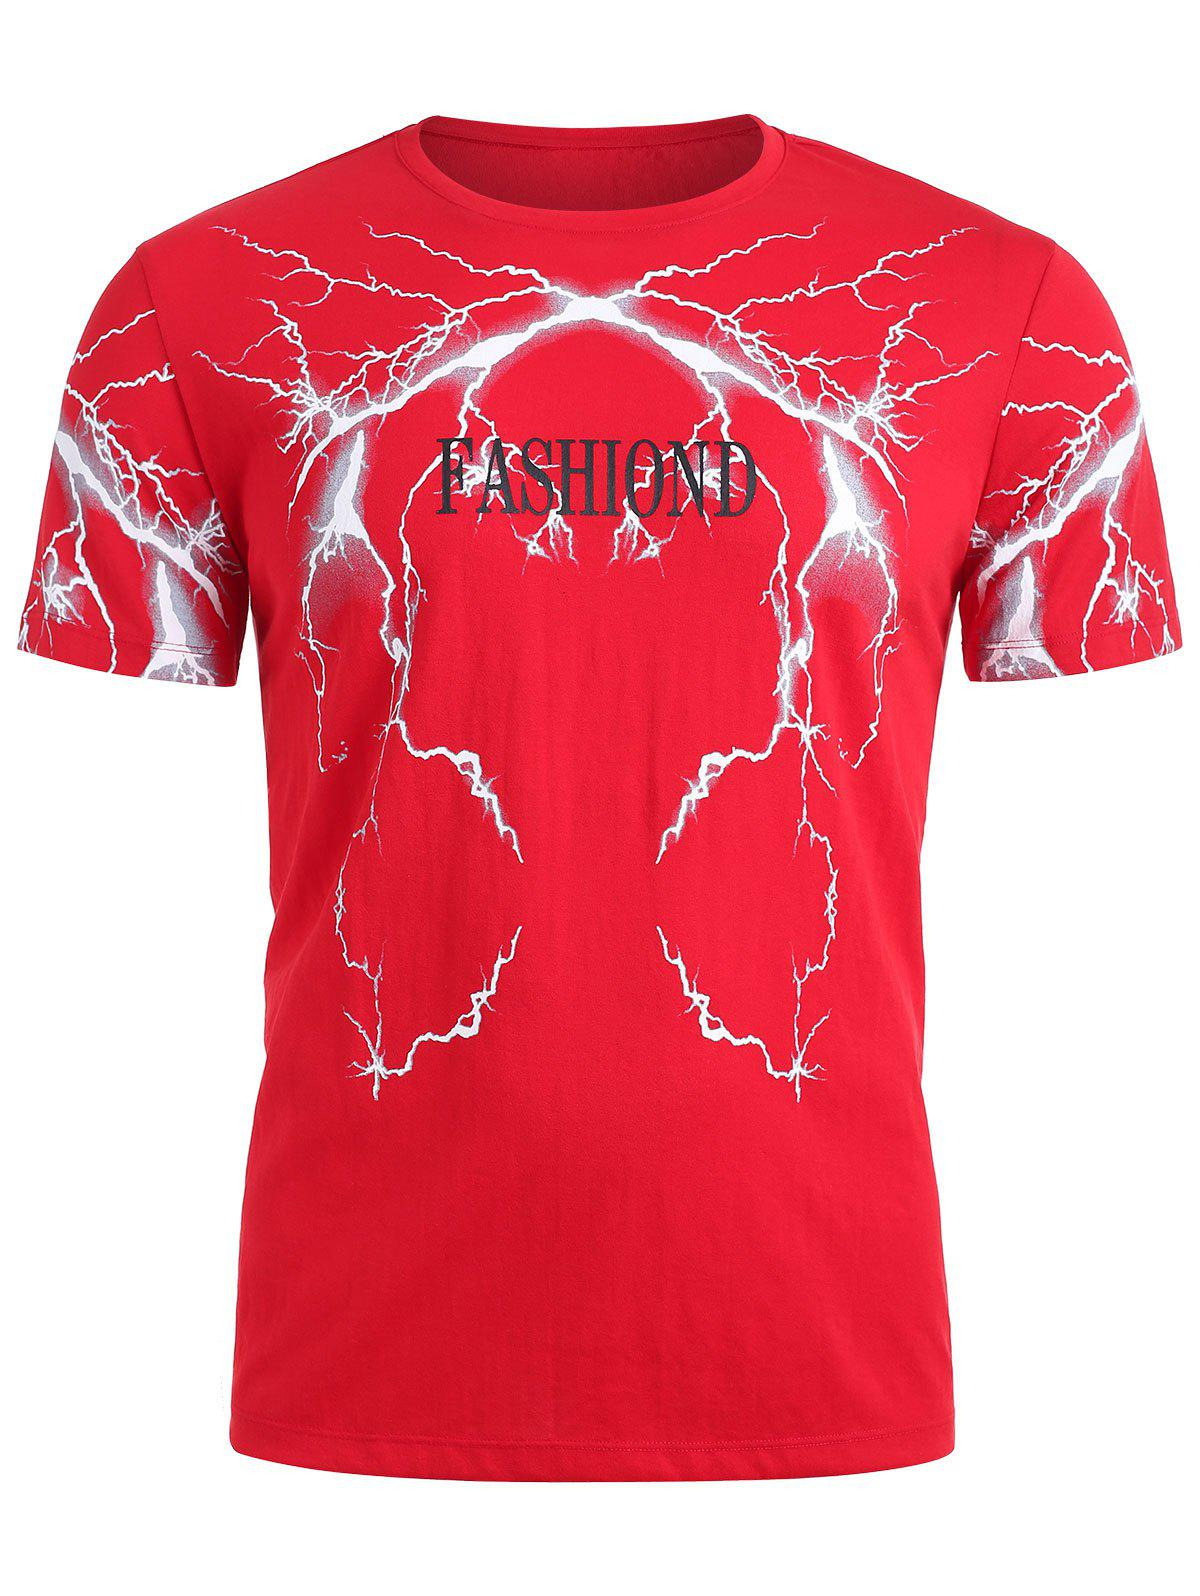 Lightning Flash Printed Letter T-shirt - FIRE ENGINE RED XS